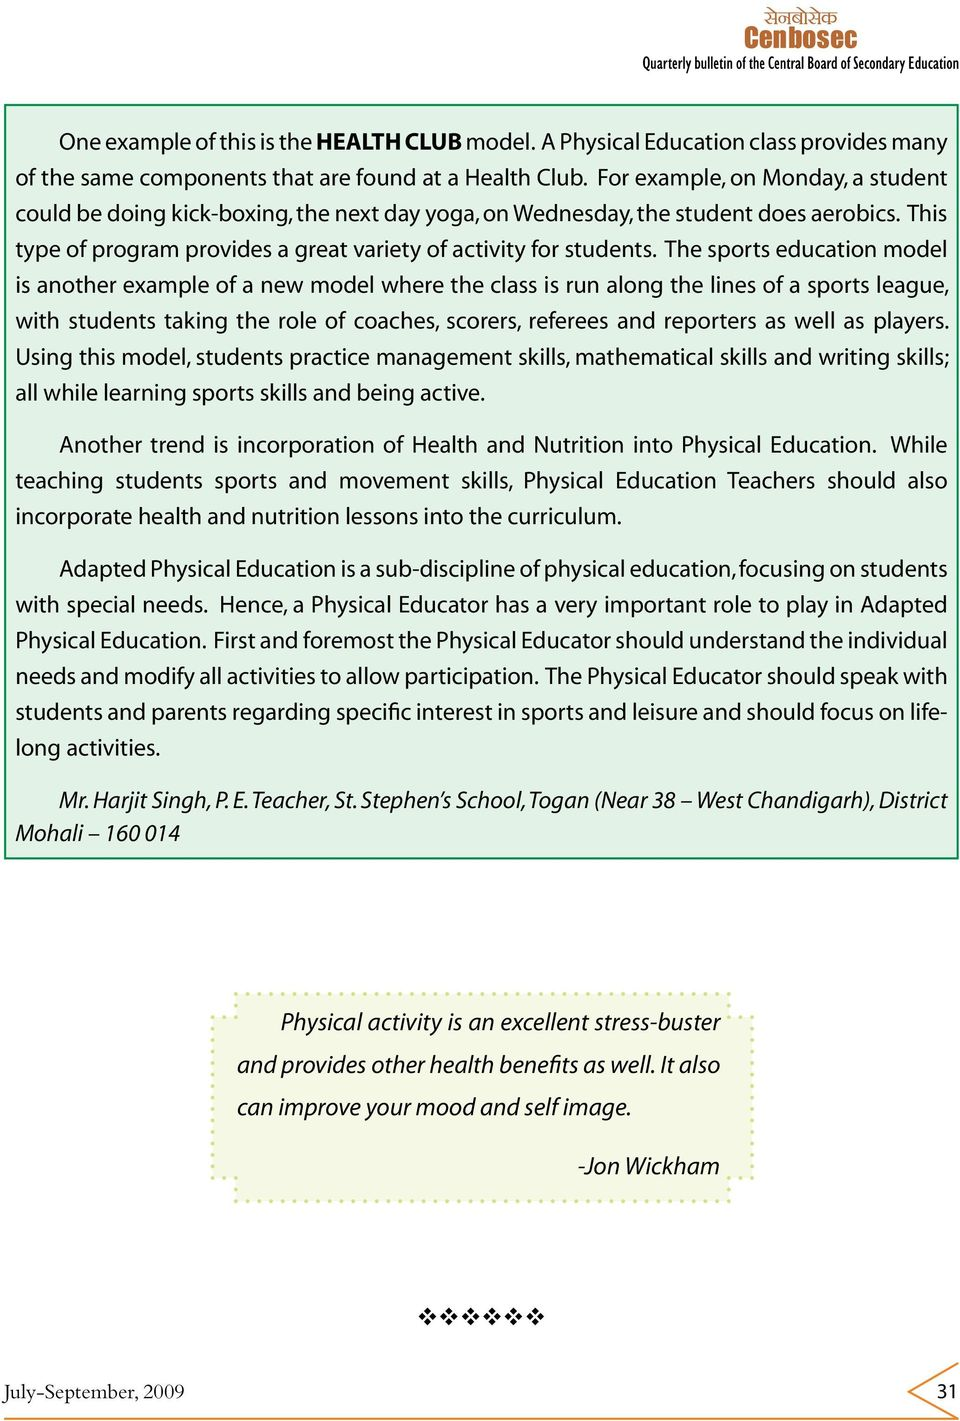 roles of physical educator